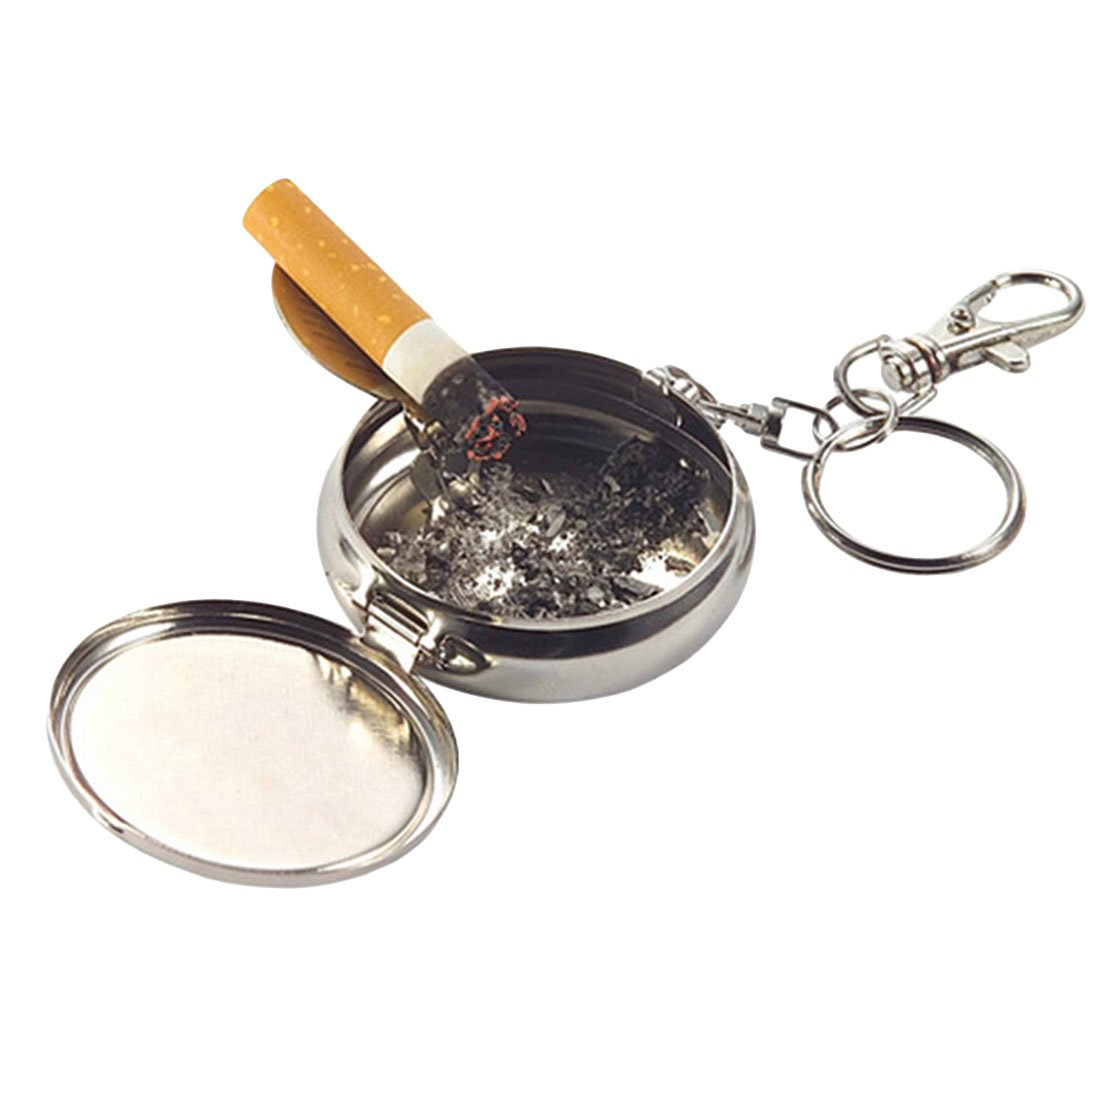 Doyime Portable Ashtray Stainless Steel Ashtray Random Exquisite Pattern with Key Ring